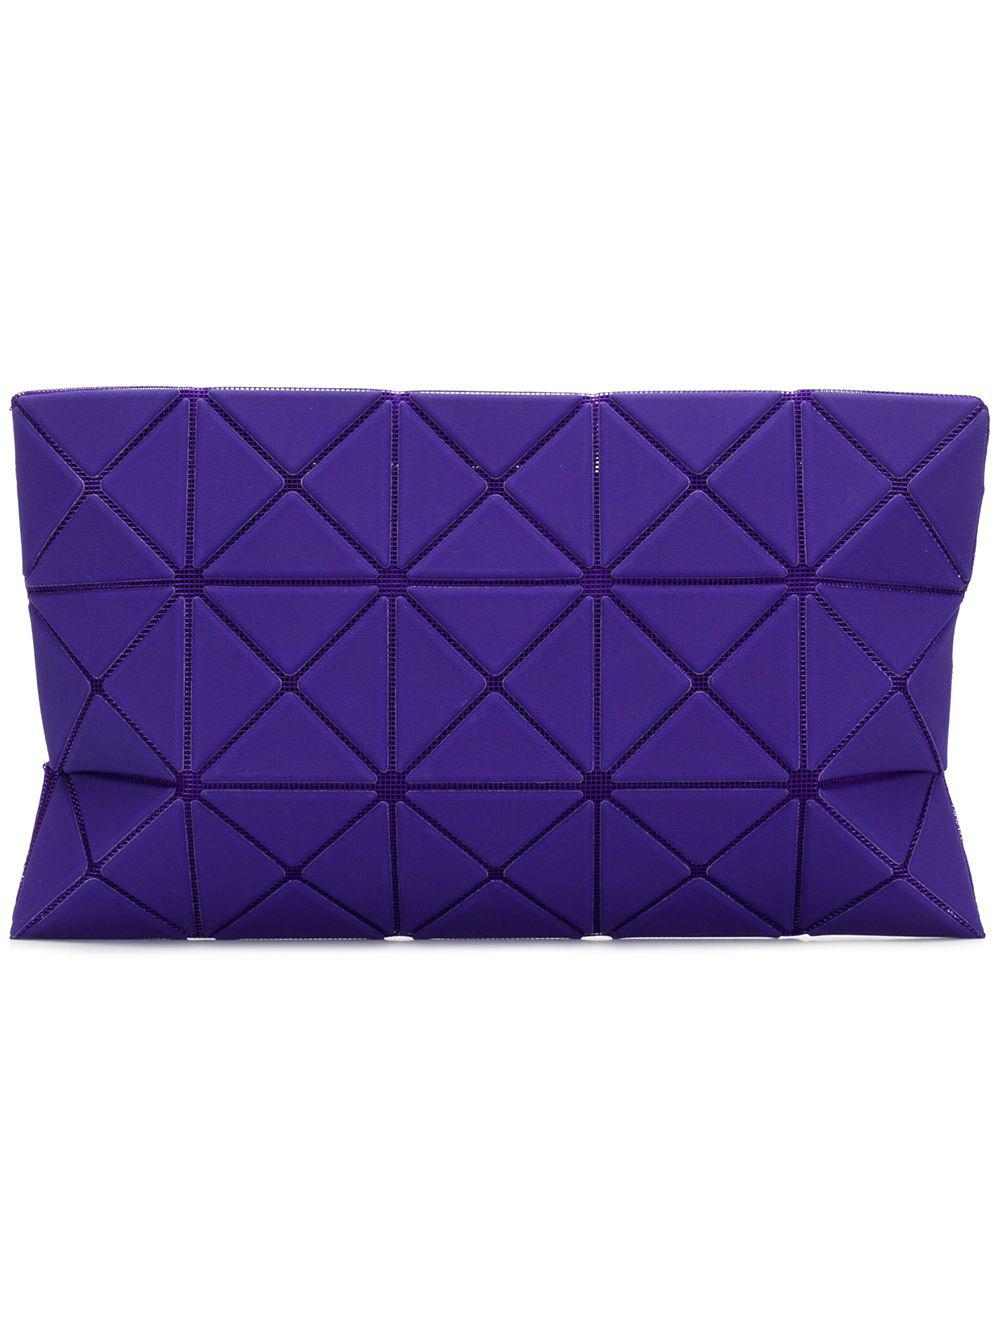 c442725cde66 Lyst - Bao Bao Issey Miyake Lucent Nubuck Pouch in Purple - Save 8%